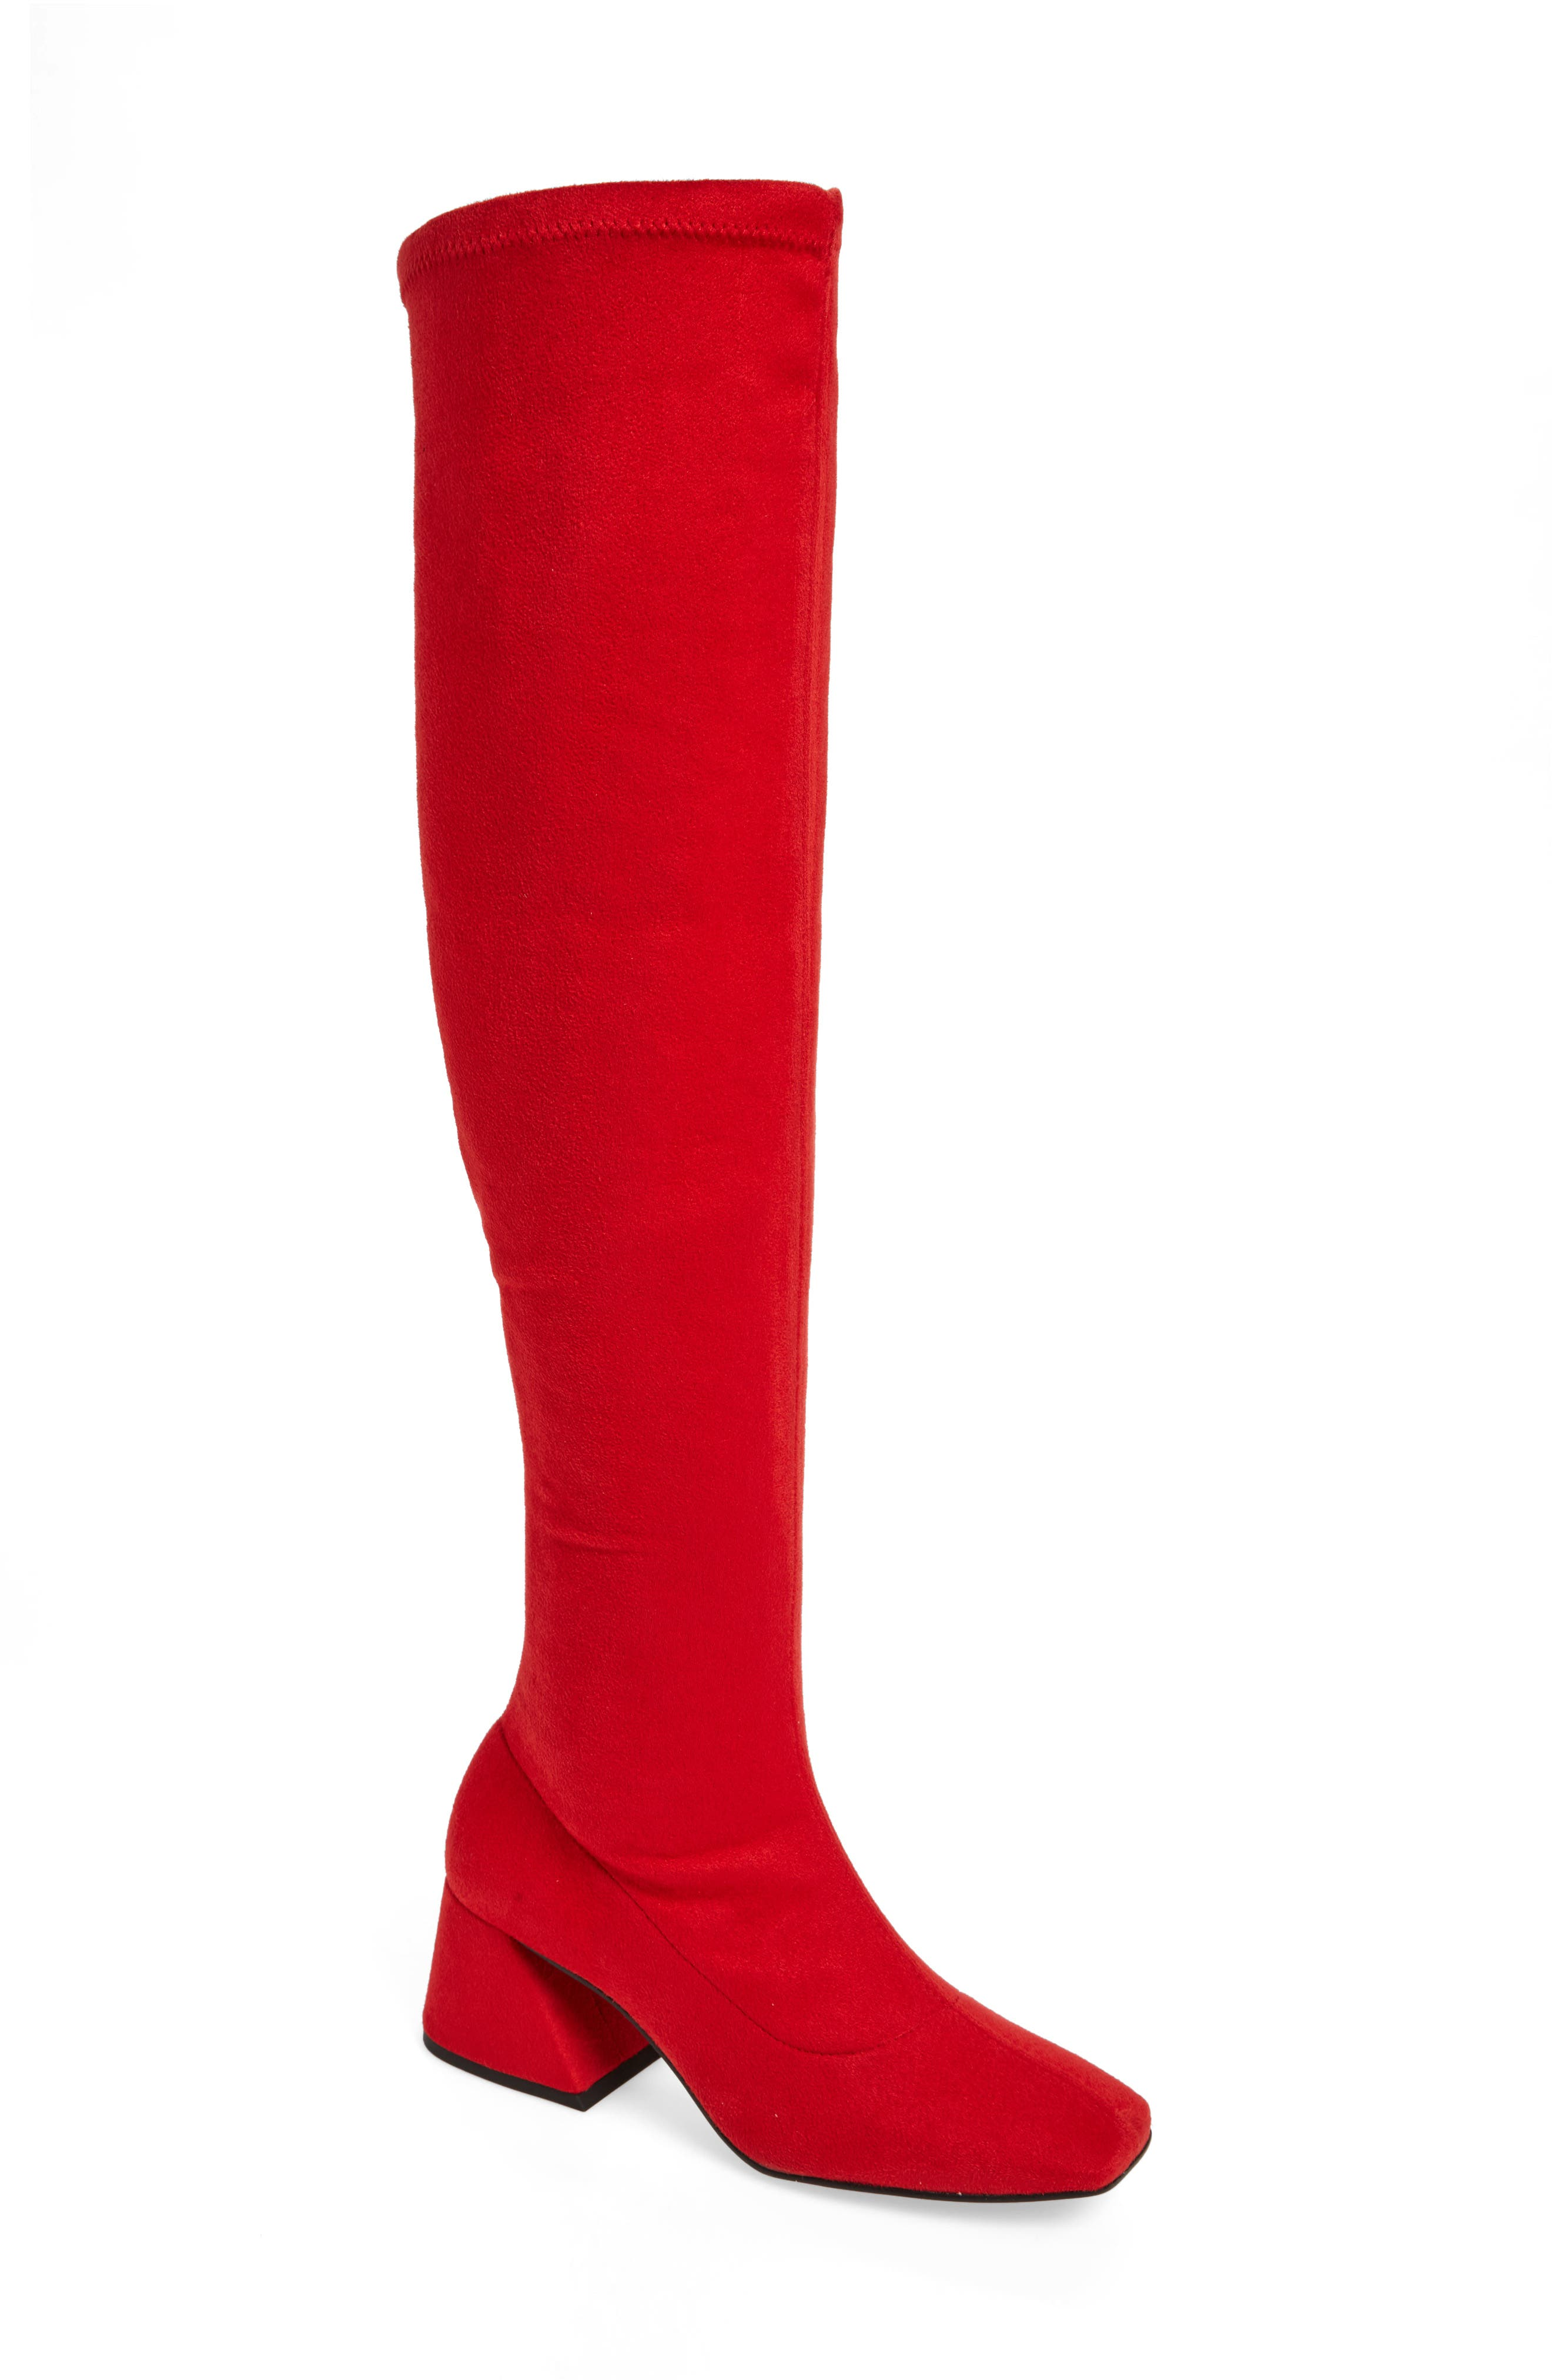 Alternate Image 1 Selected - Topshop Cappuccino Over the Knee Boot (Women)